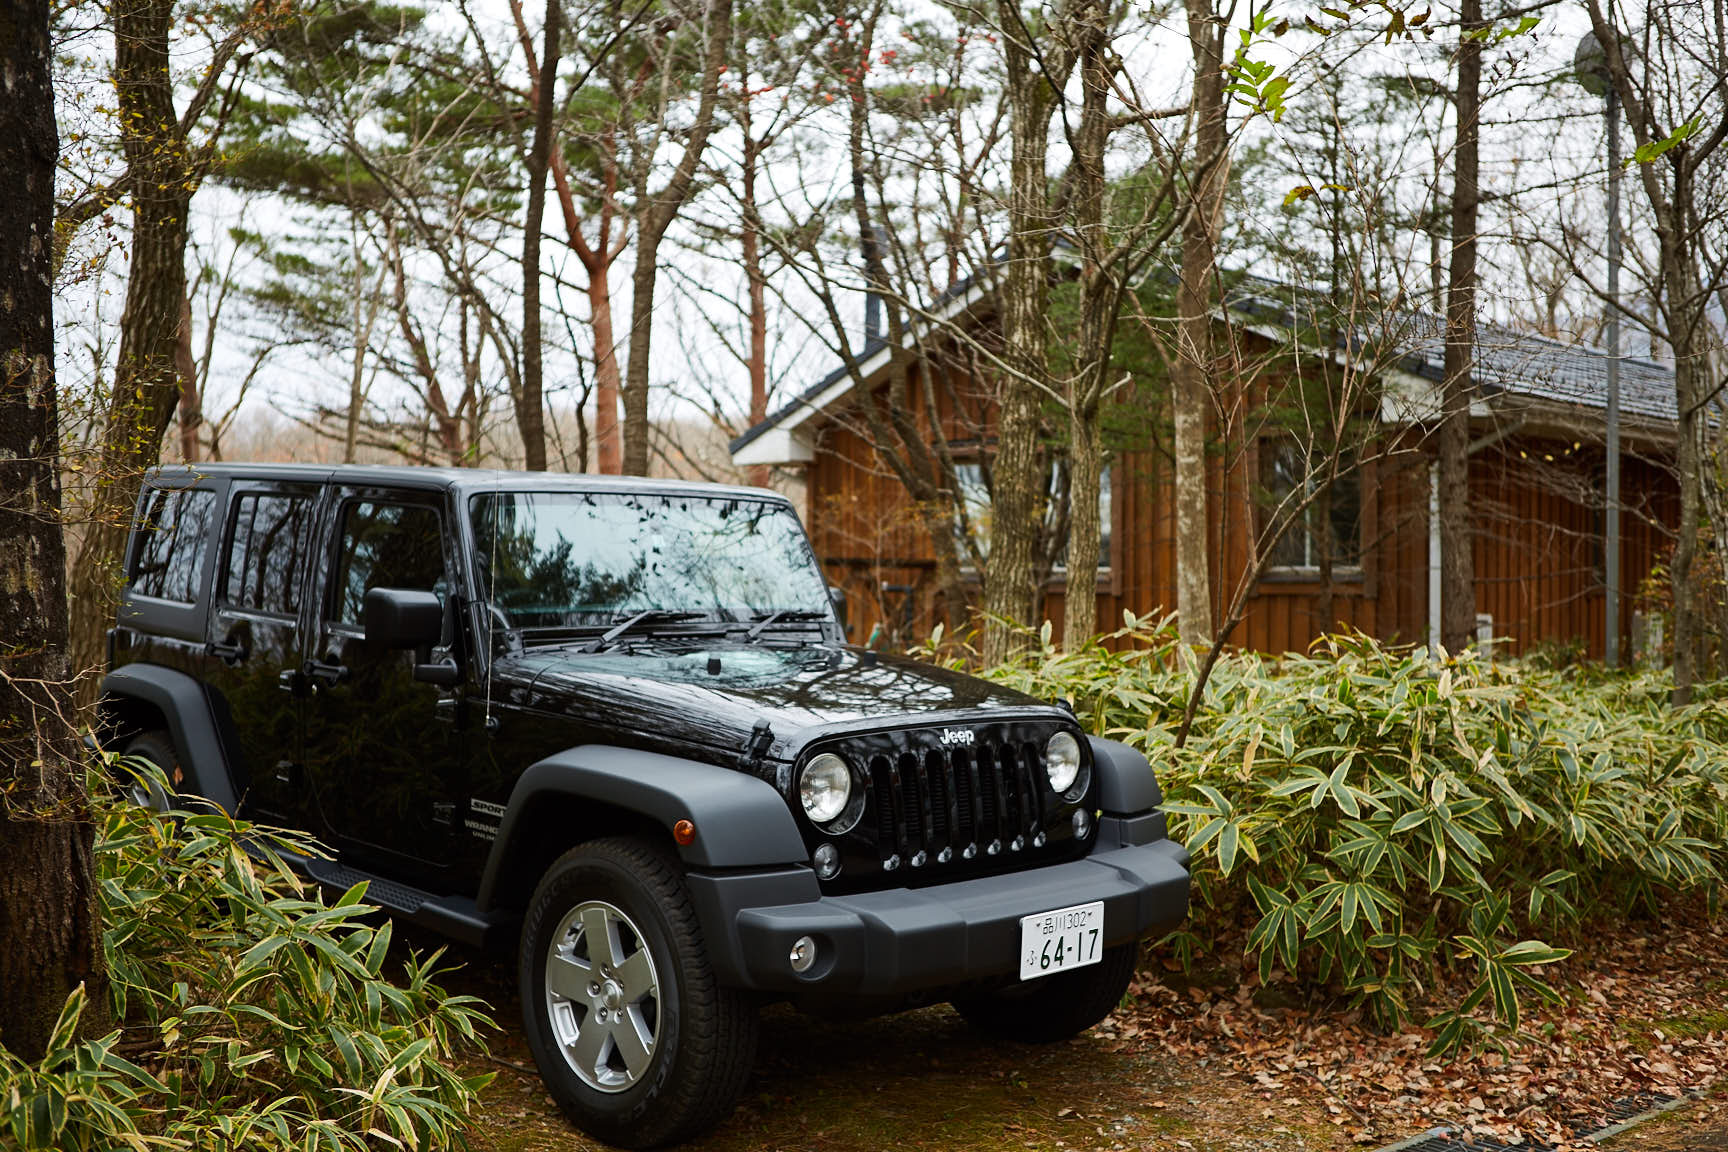 aj_445 My Jeep®,My Life. ボクとJeep®の暮らしかた。シェフ・相場正一郎